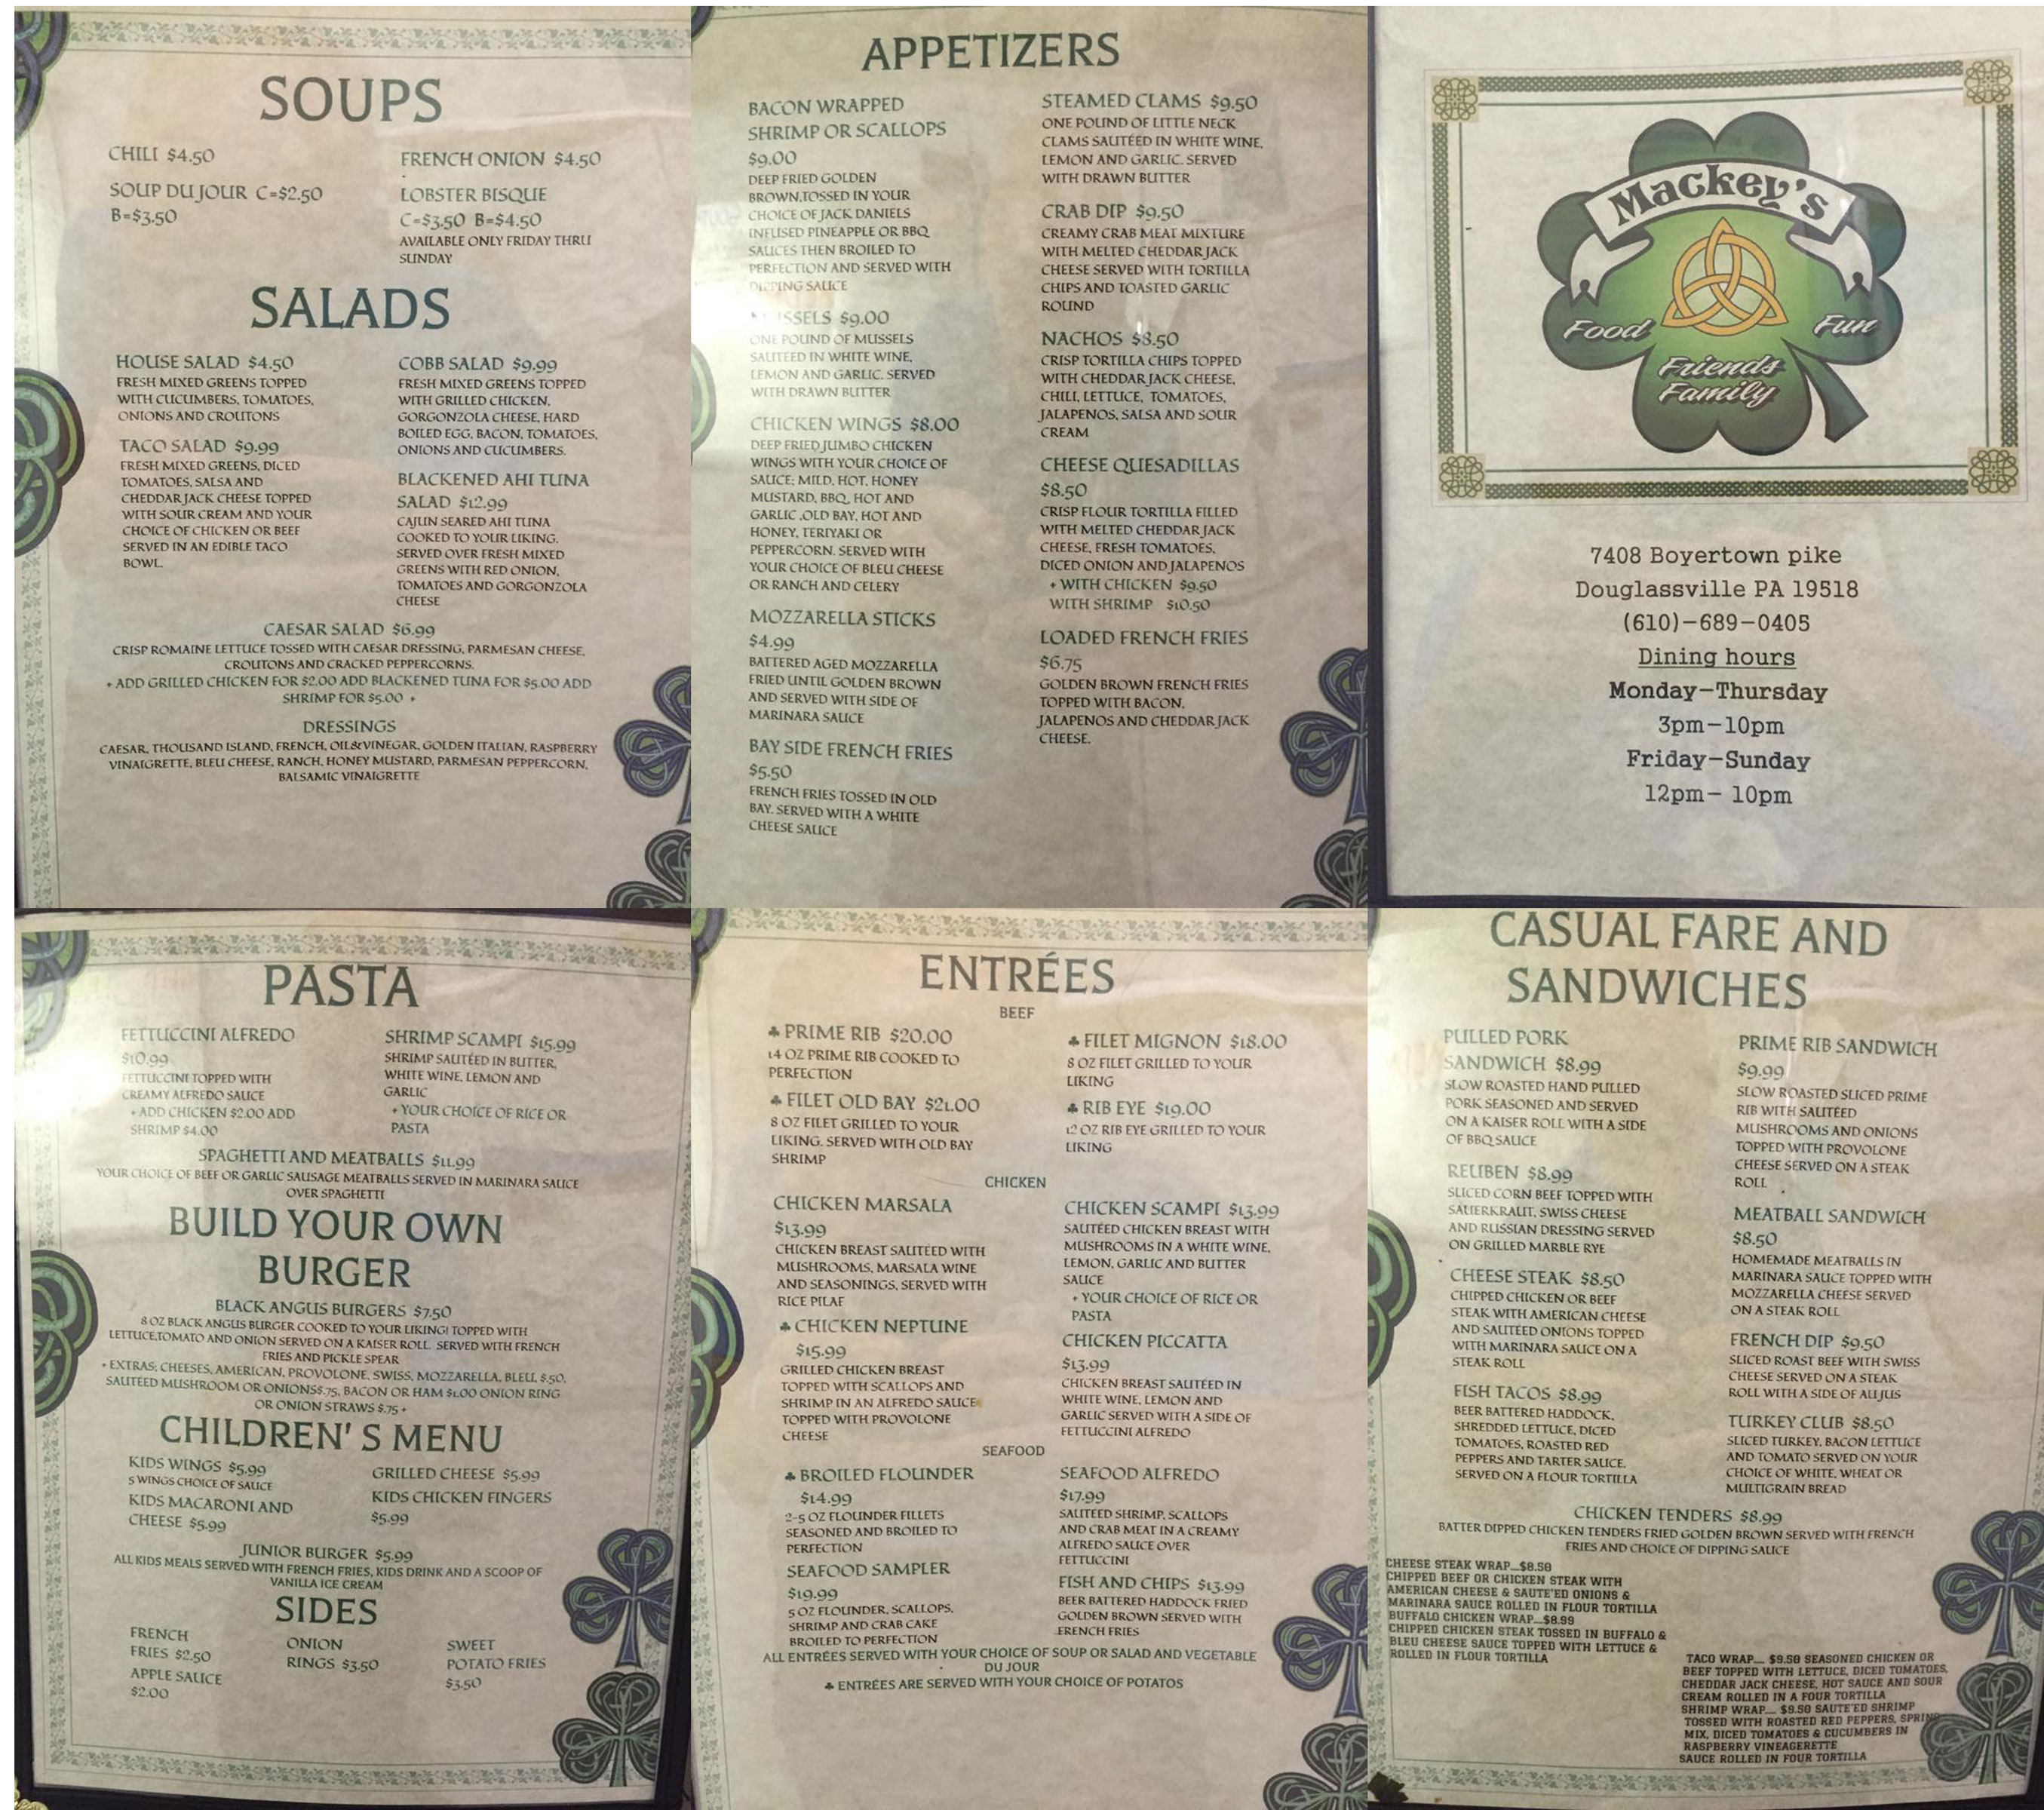 Mackey's Menu